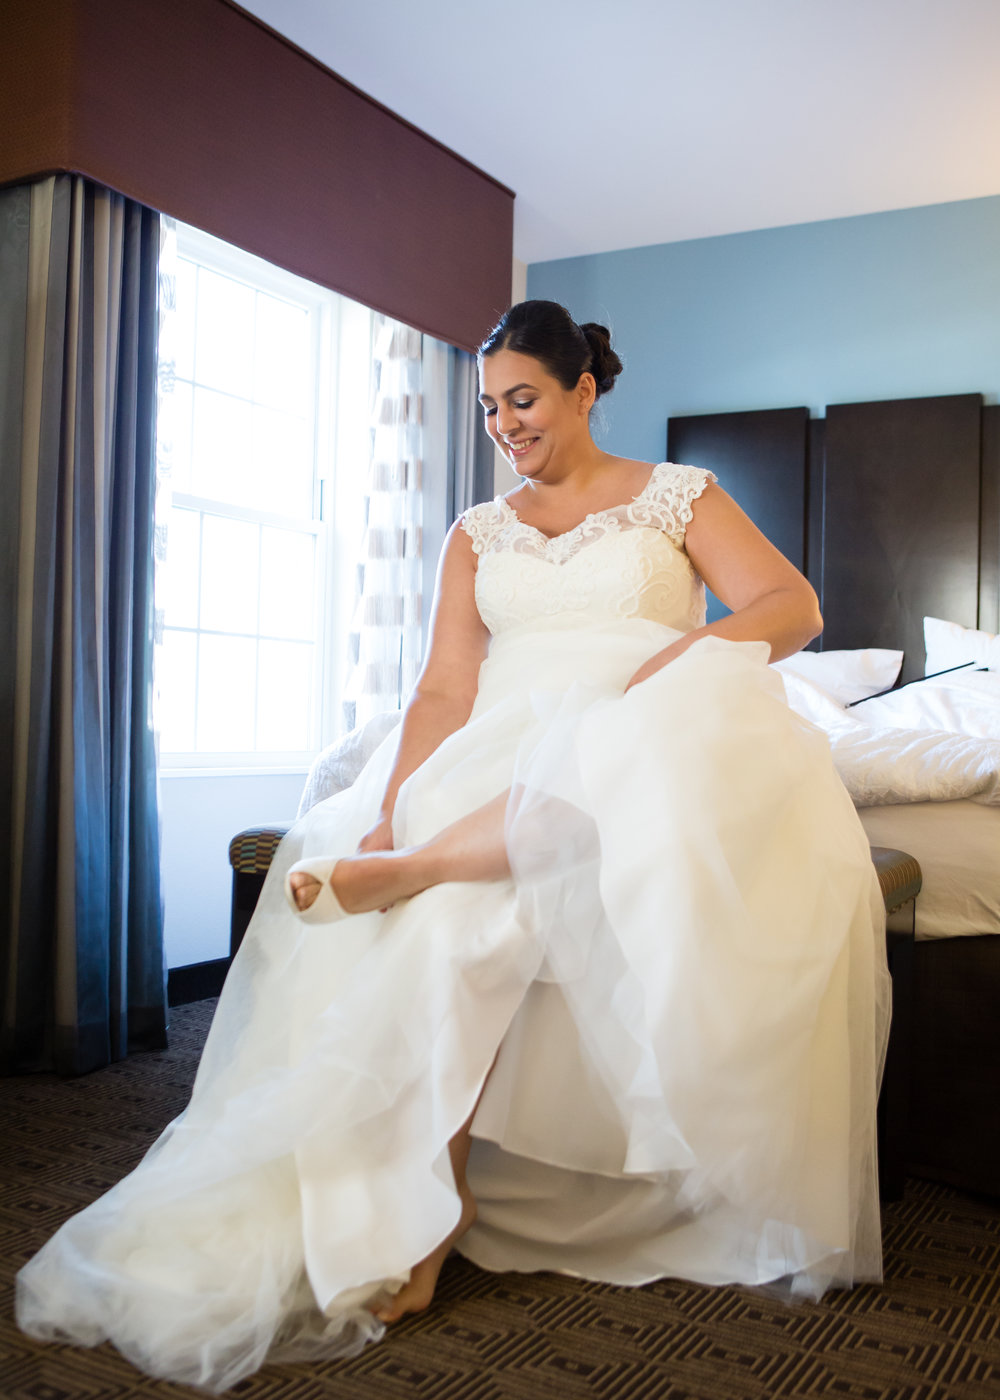 Bride puts on shoes - New Rochelle wedding - New York wedding - Hudson Valley wedding - Heather & Ian's wedding - Amy Sims Photography